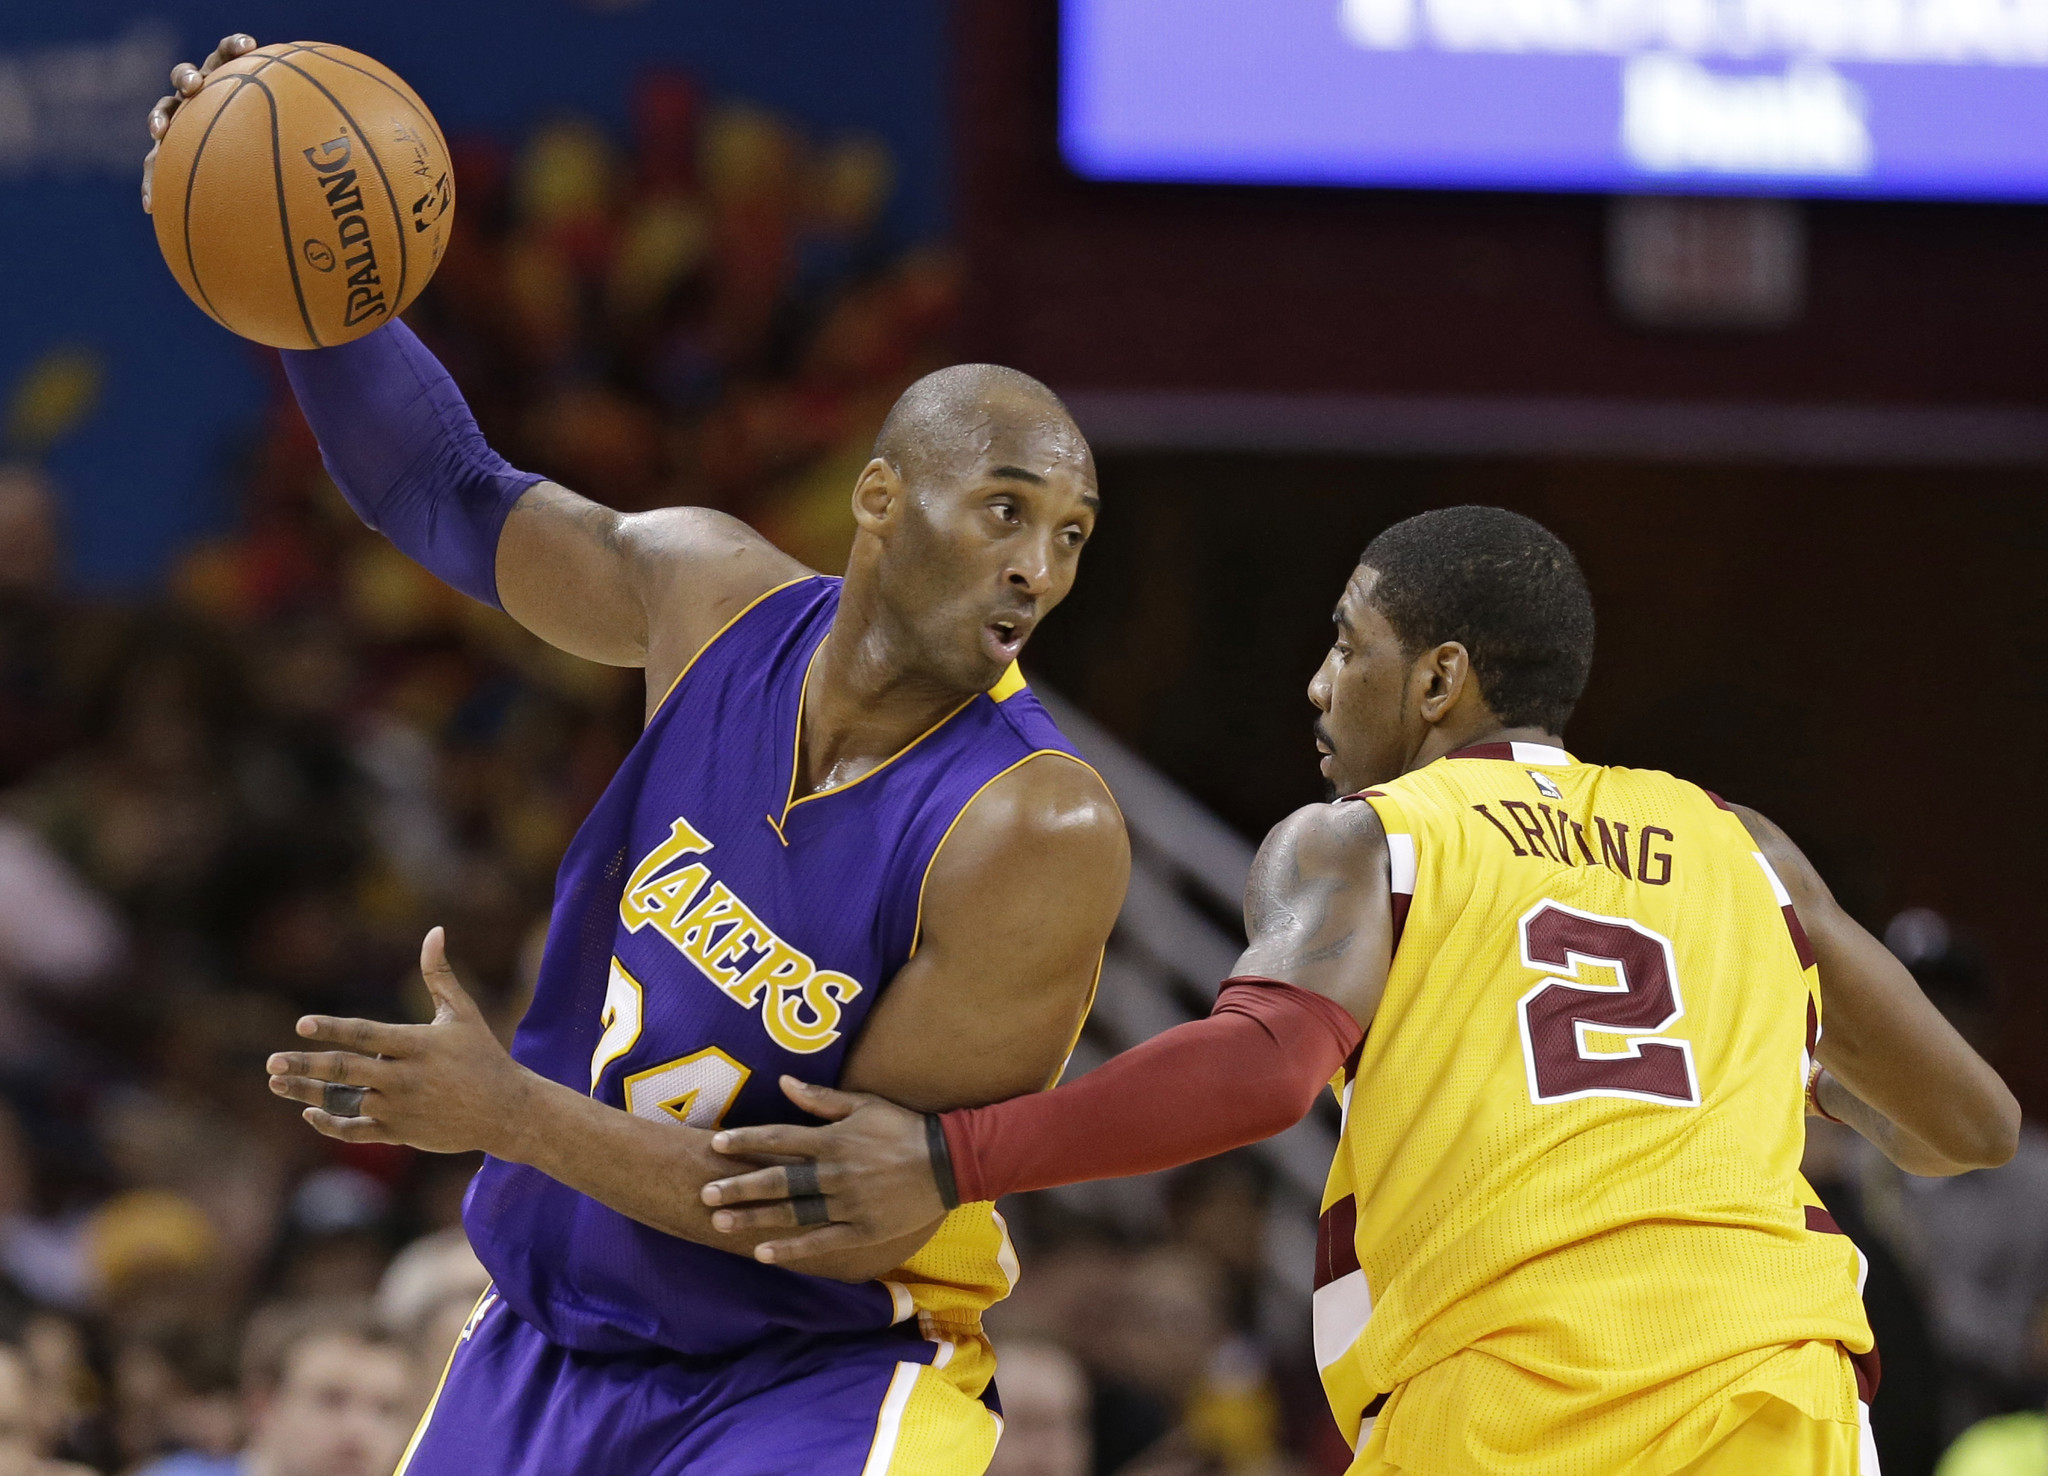 Kobe Bryant and Kyrie Irving's relationship went deeper than basketball